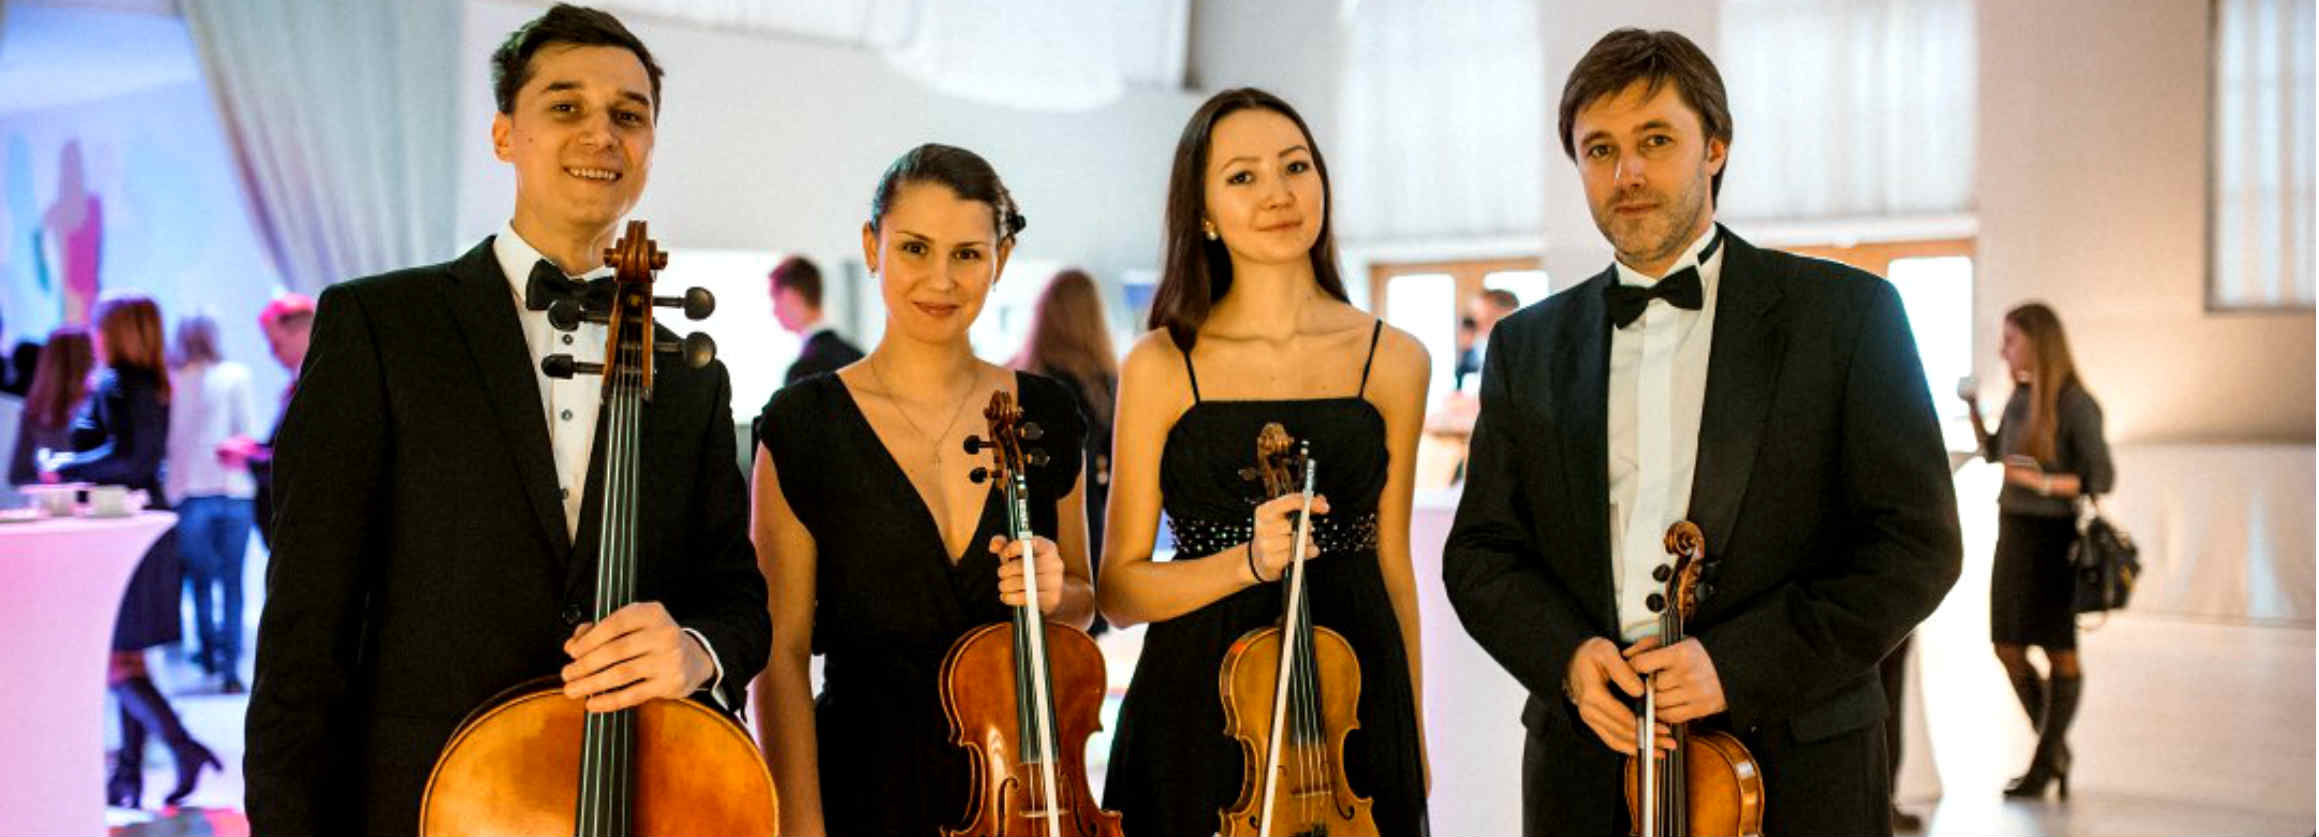 St. Louis String Quartet: ceremony music,string quartet for corporate events, string quo, string trio